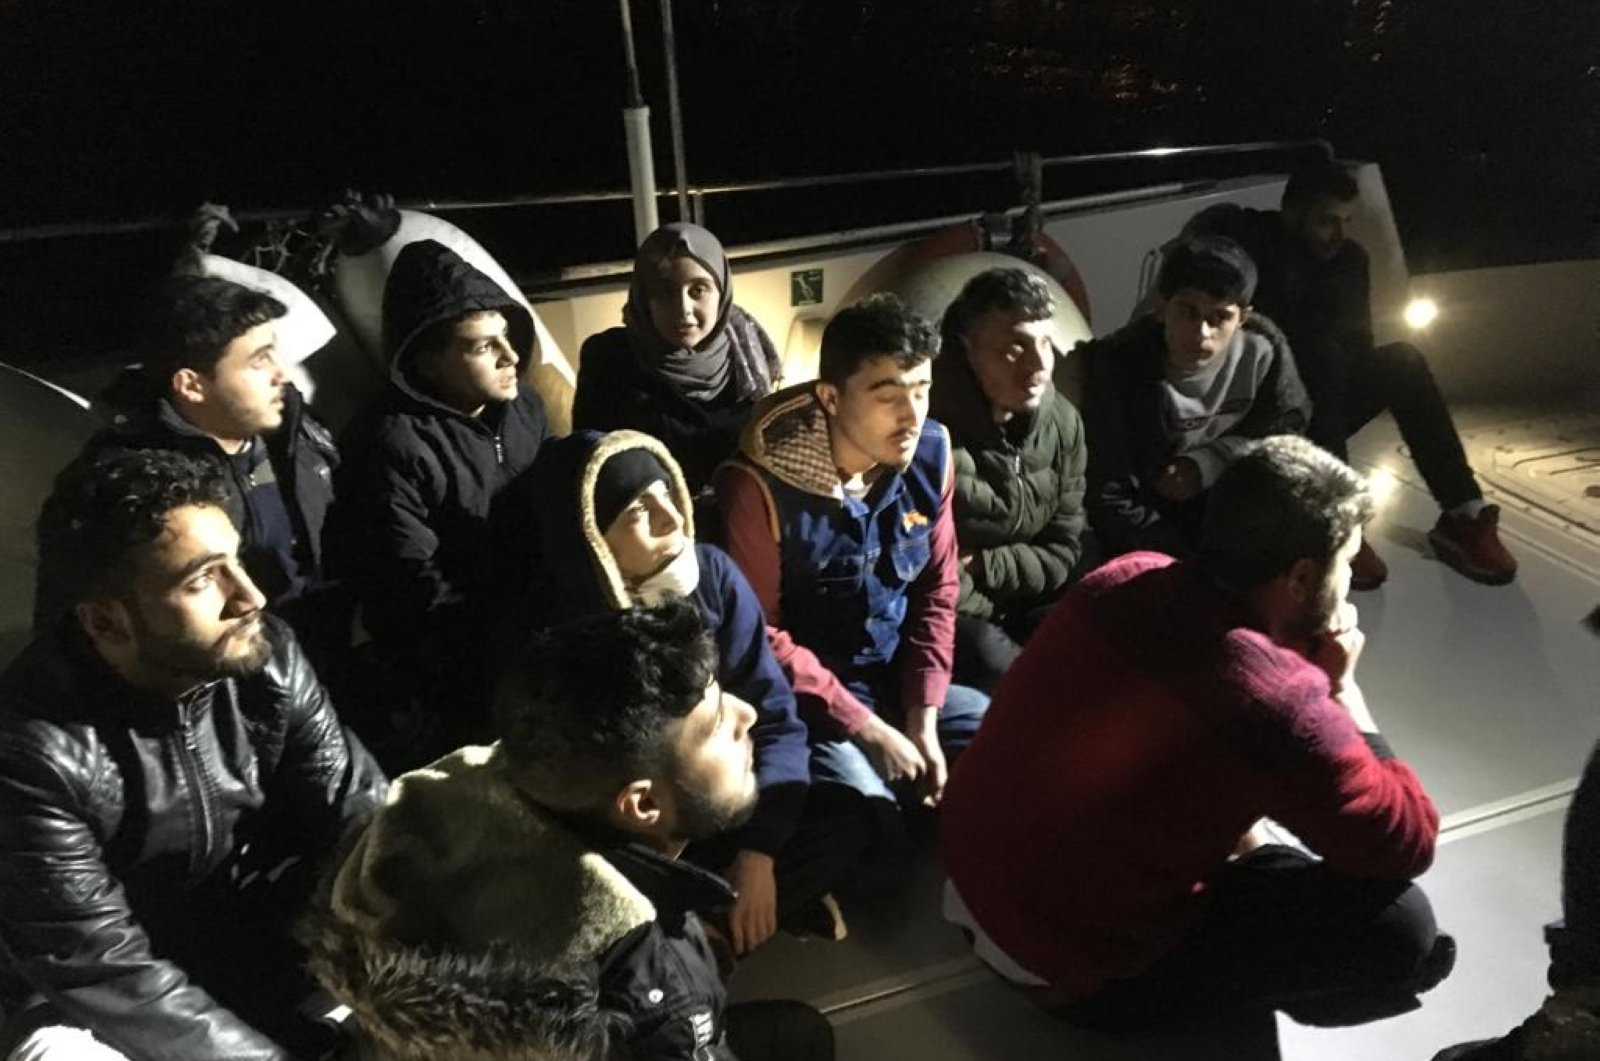 Since Jan. 1, Coast Guard officers have intercepted 5,780 illegal migrants in the Aegean Sea and the vast Aegean coastline stretching from Muğla in the south to Çanakkale in the north. In January alone, 4,062 migrants were stopped in 112 incidents. (AA)